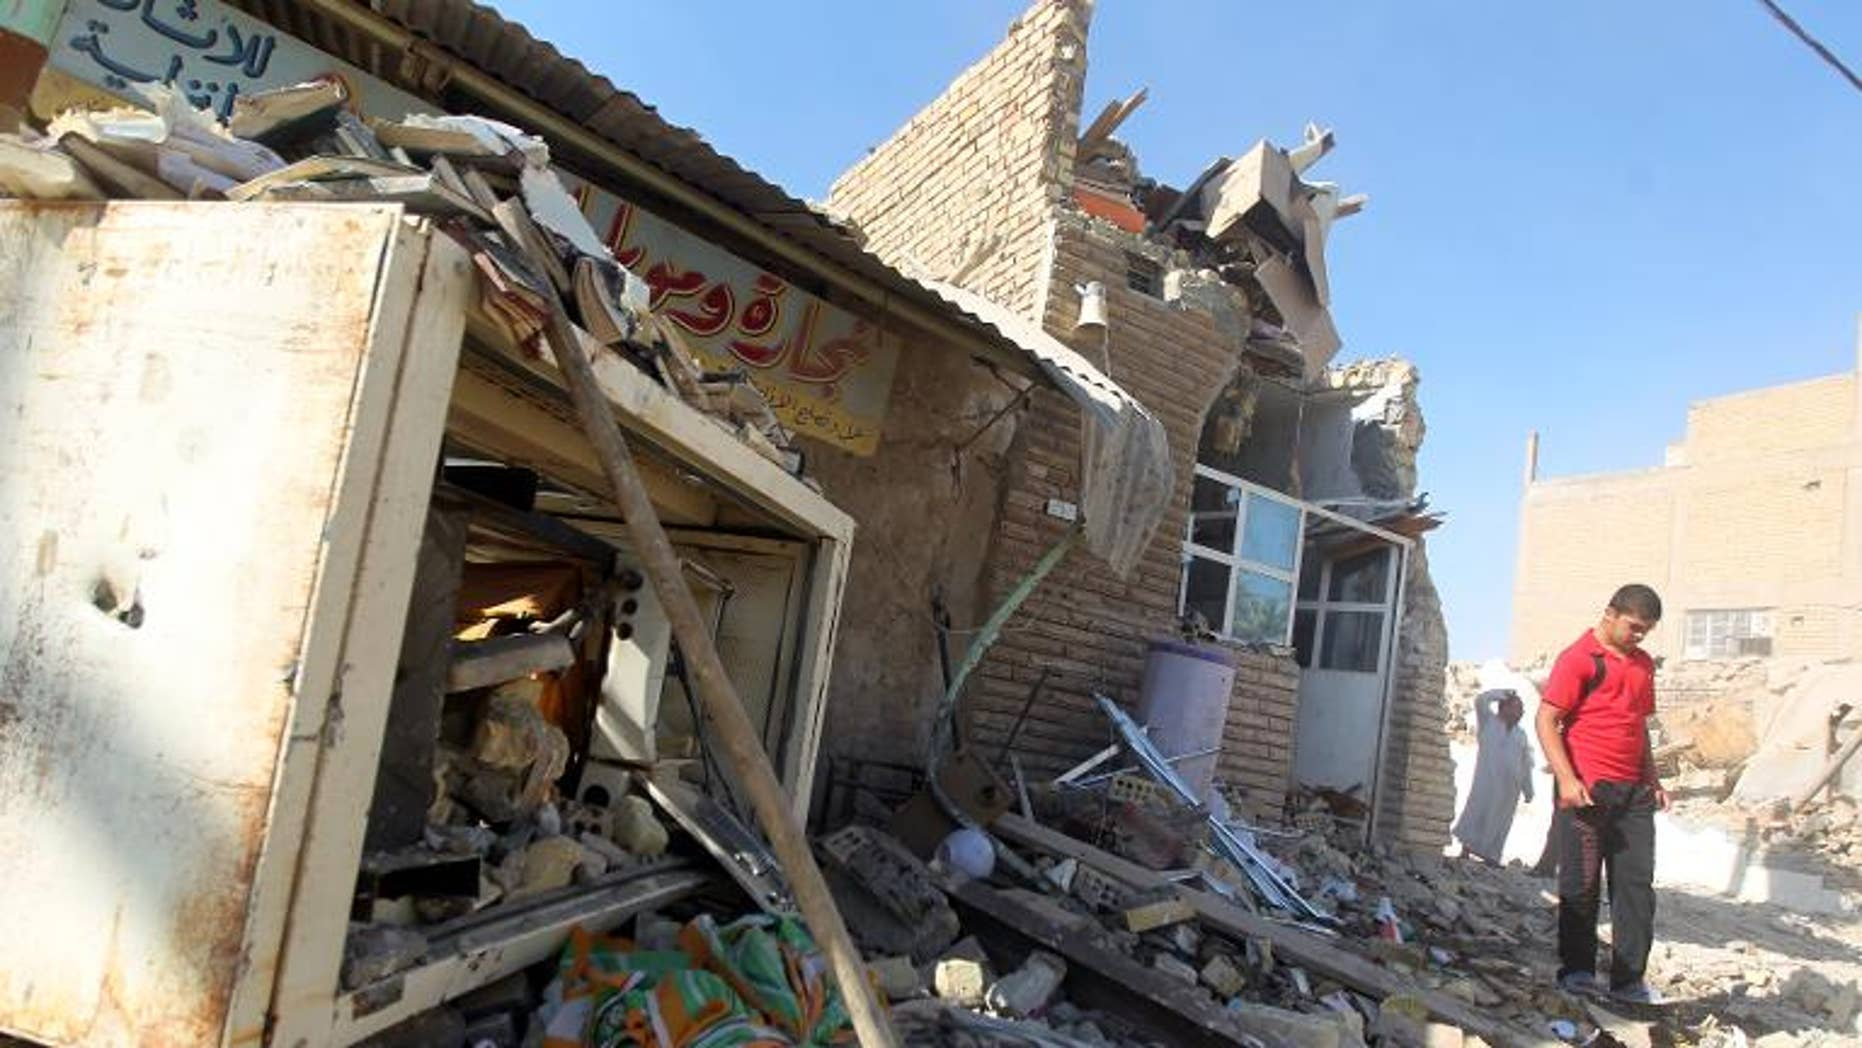 An Iraqi walks on the rubble of the Al-Hussein mosque following an explosion in the district of al-Musayyib, south of Baghdad, on September 30, 2013